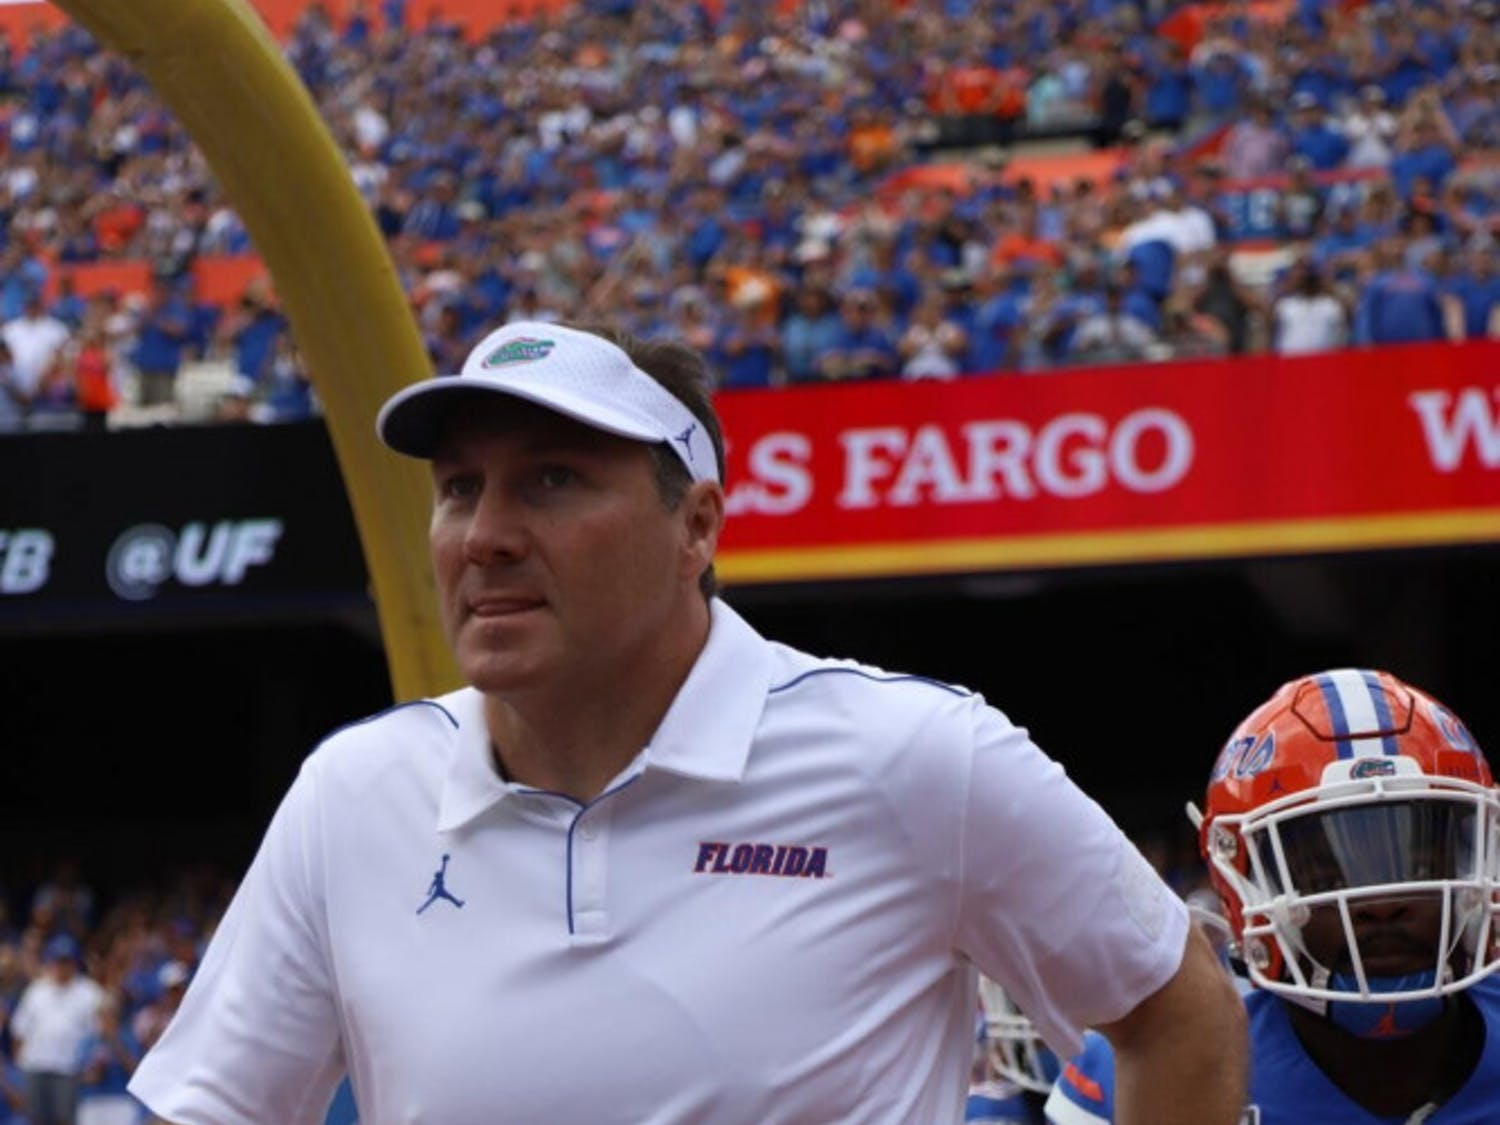 Mullen admitted fault on a recruiting violation and a failure to comply with NCAA investigations.